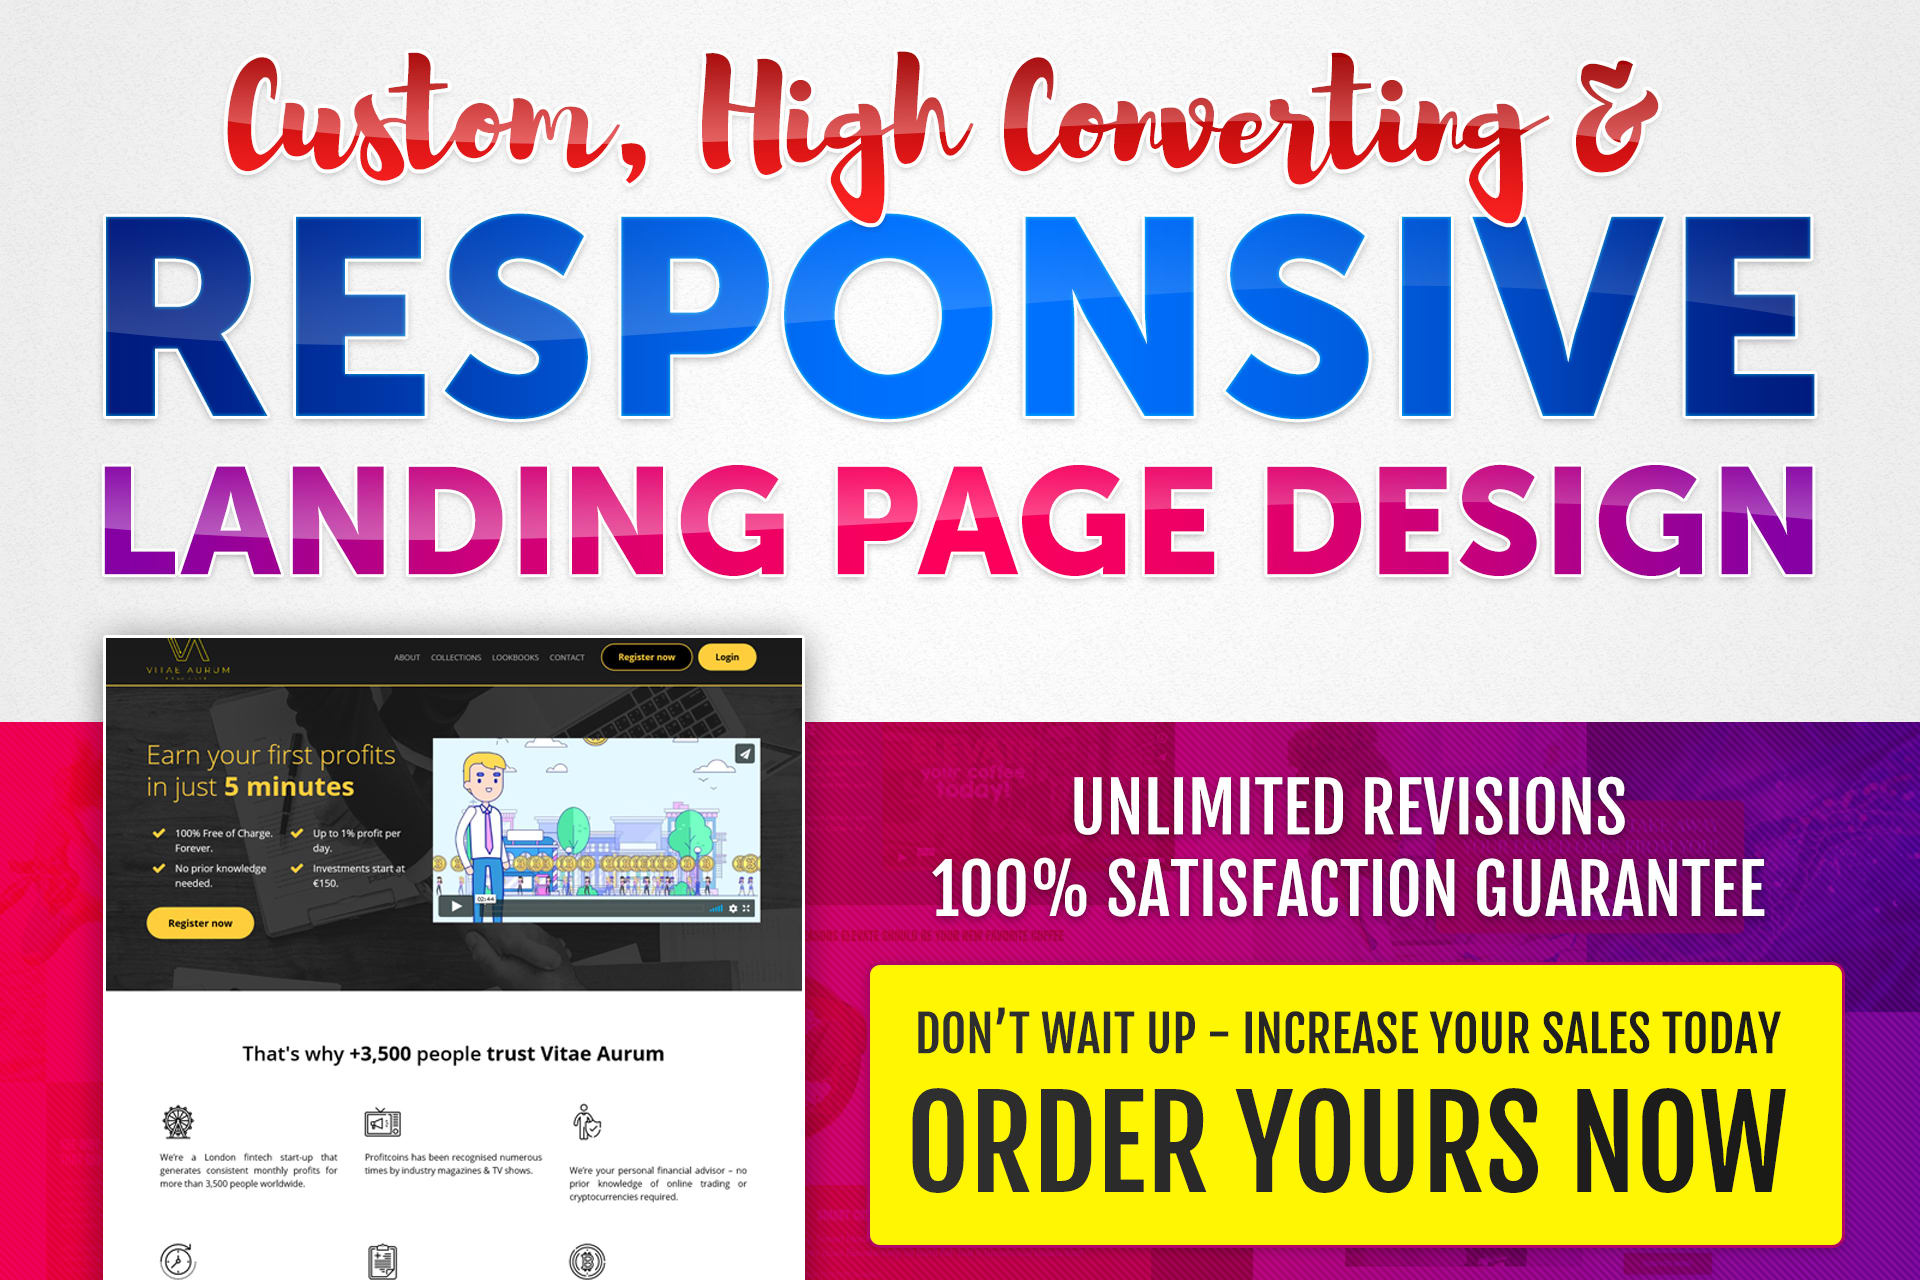 I will create stunning landing page design.